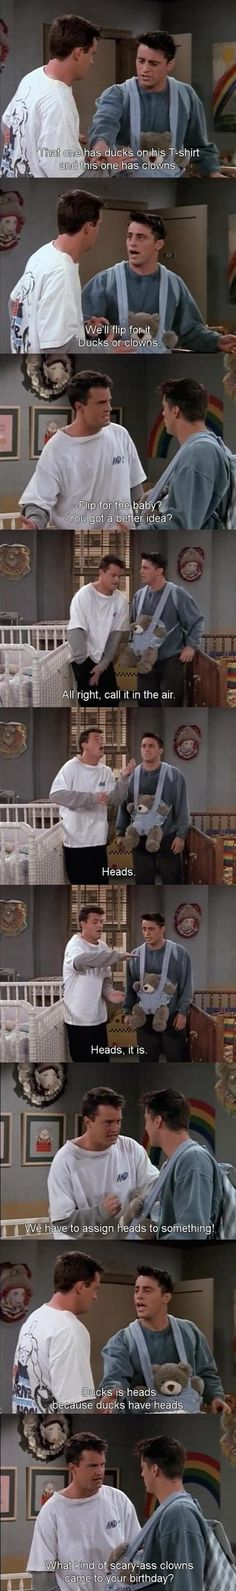 friends tv show funny | funny friends tv show quotes. ha totally agree with Joey on this one Clowns are scary as hell!!!